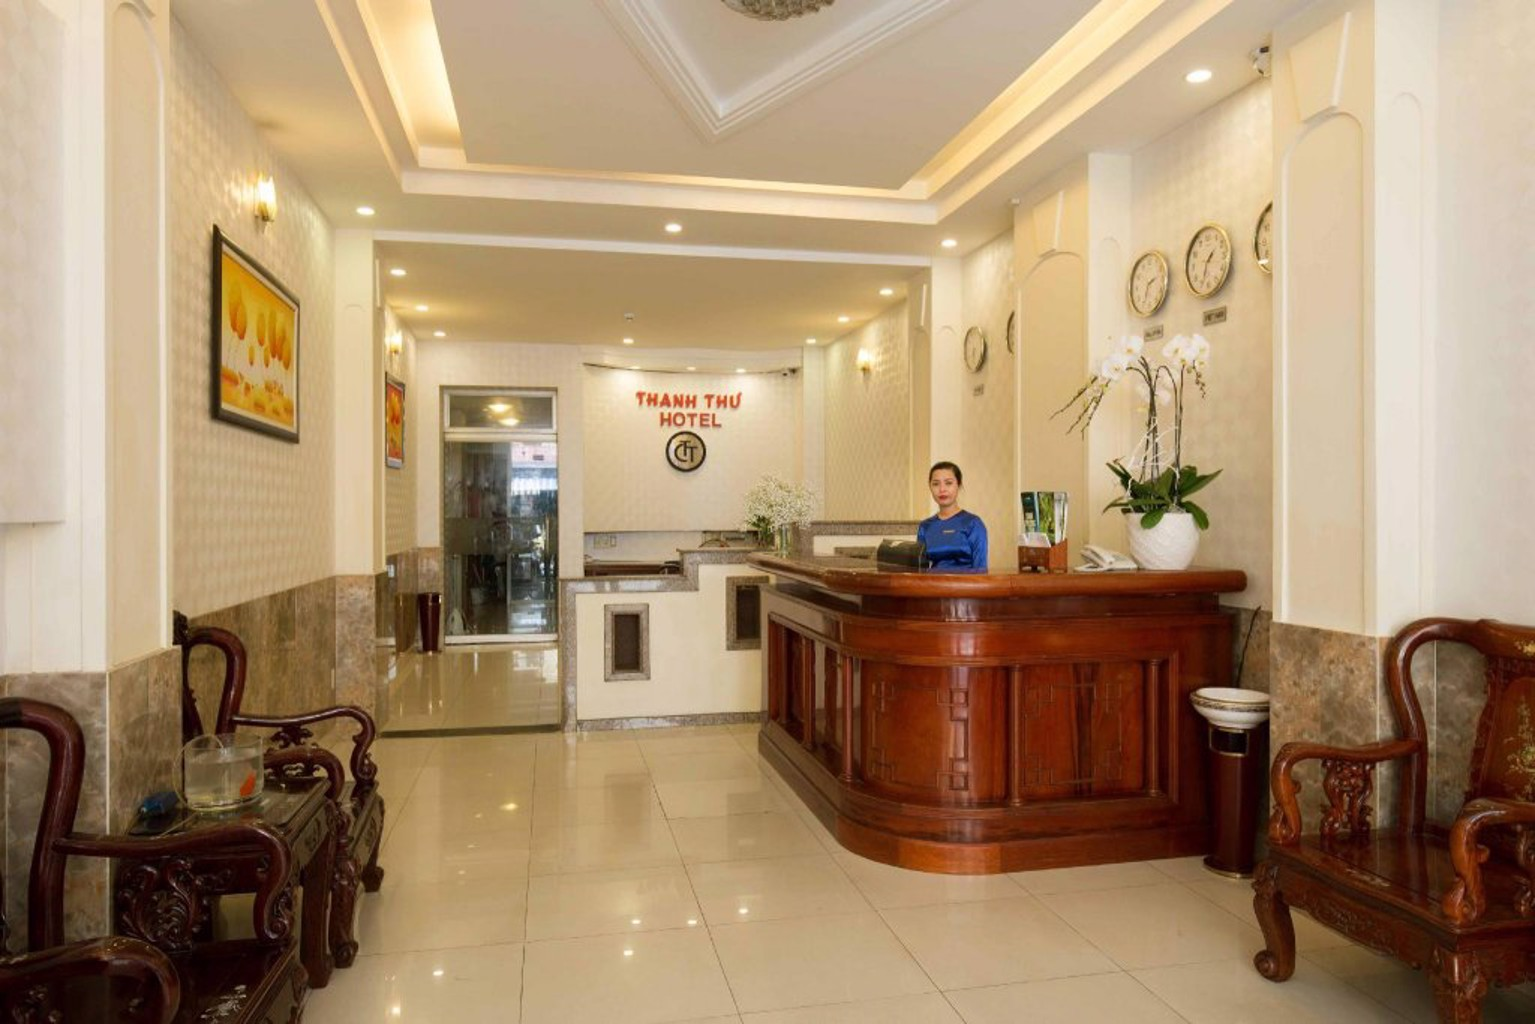 Gallery image of Thanh Thu Hotel